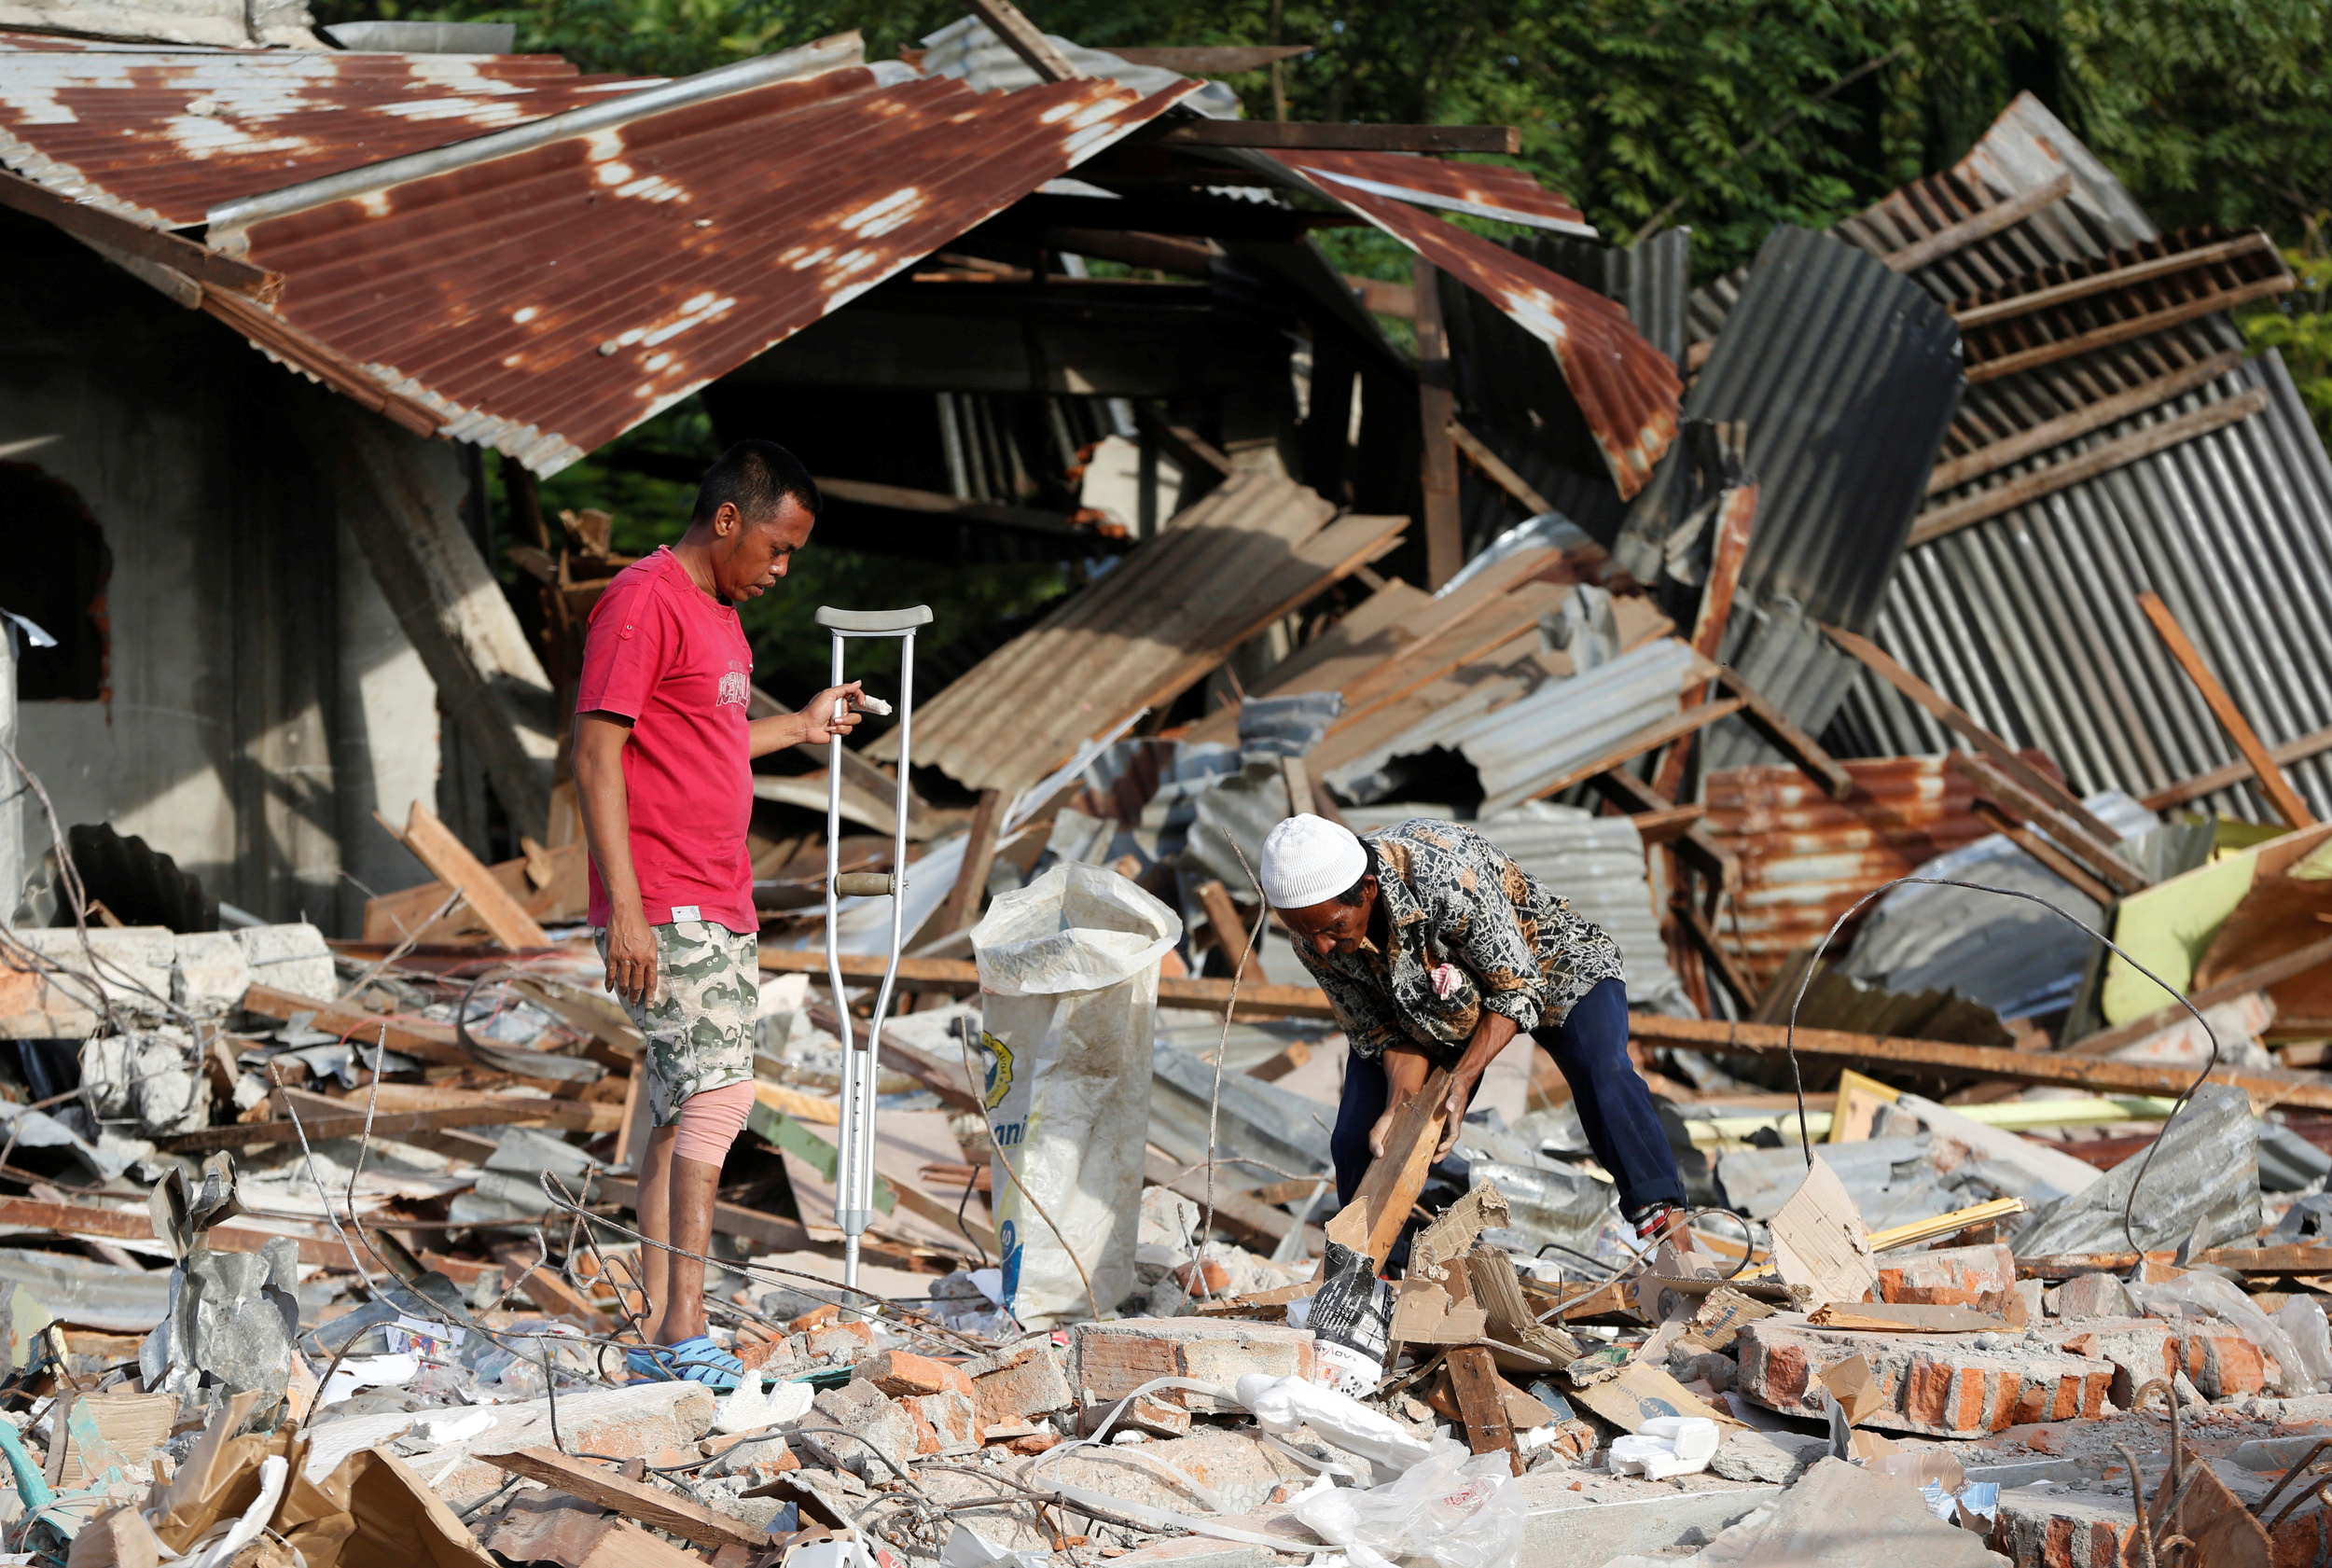 Men look for items to salvage from a building which collapsed following this week's strong earthquake in Pidie Jaya, Aceh province, Indonesia, December 10, 2016. Photo By Darren Whiteside/Reuters